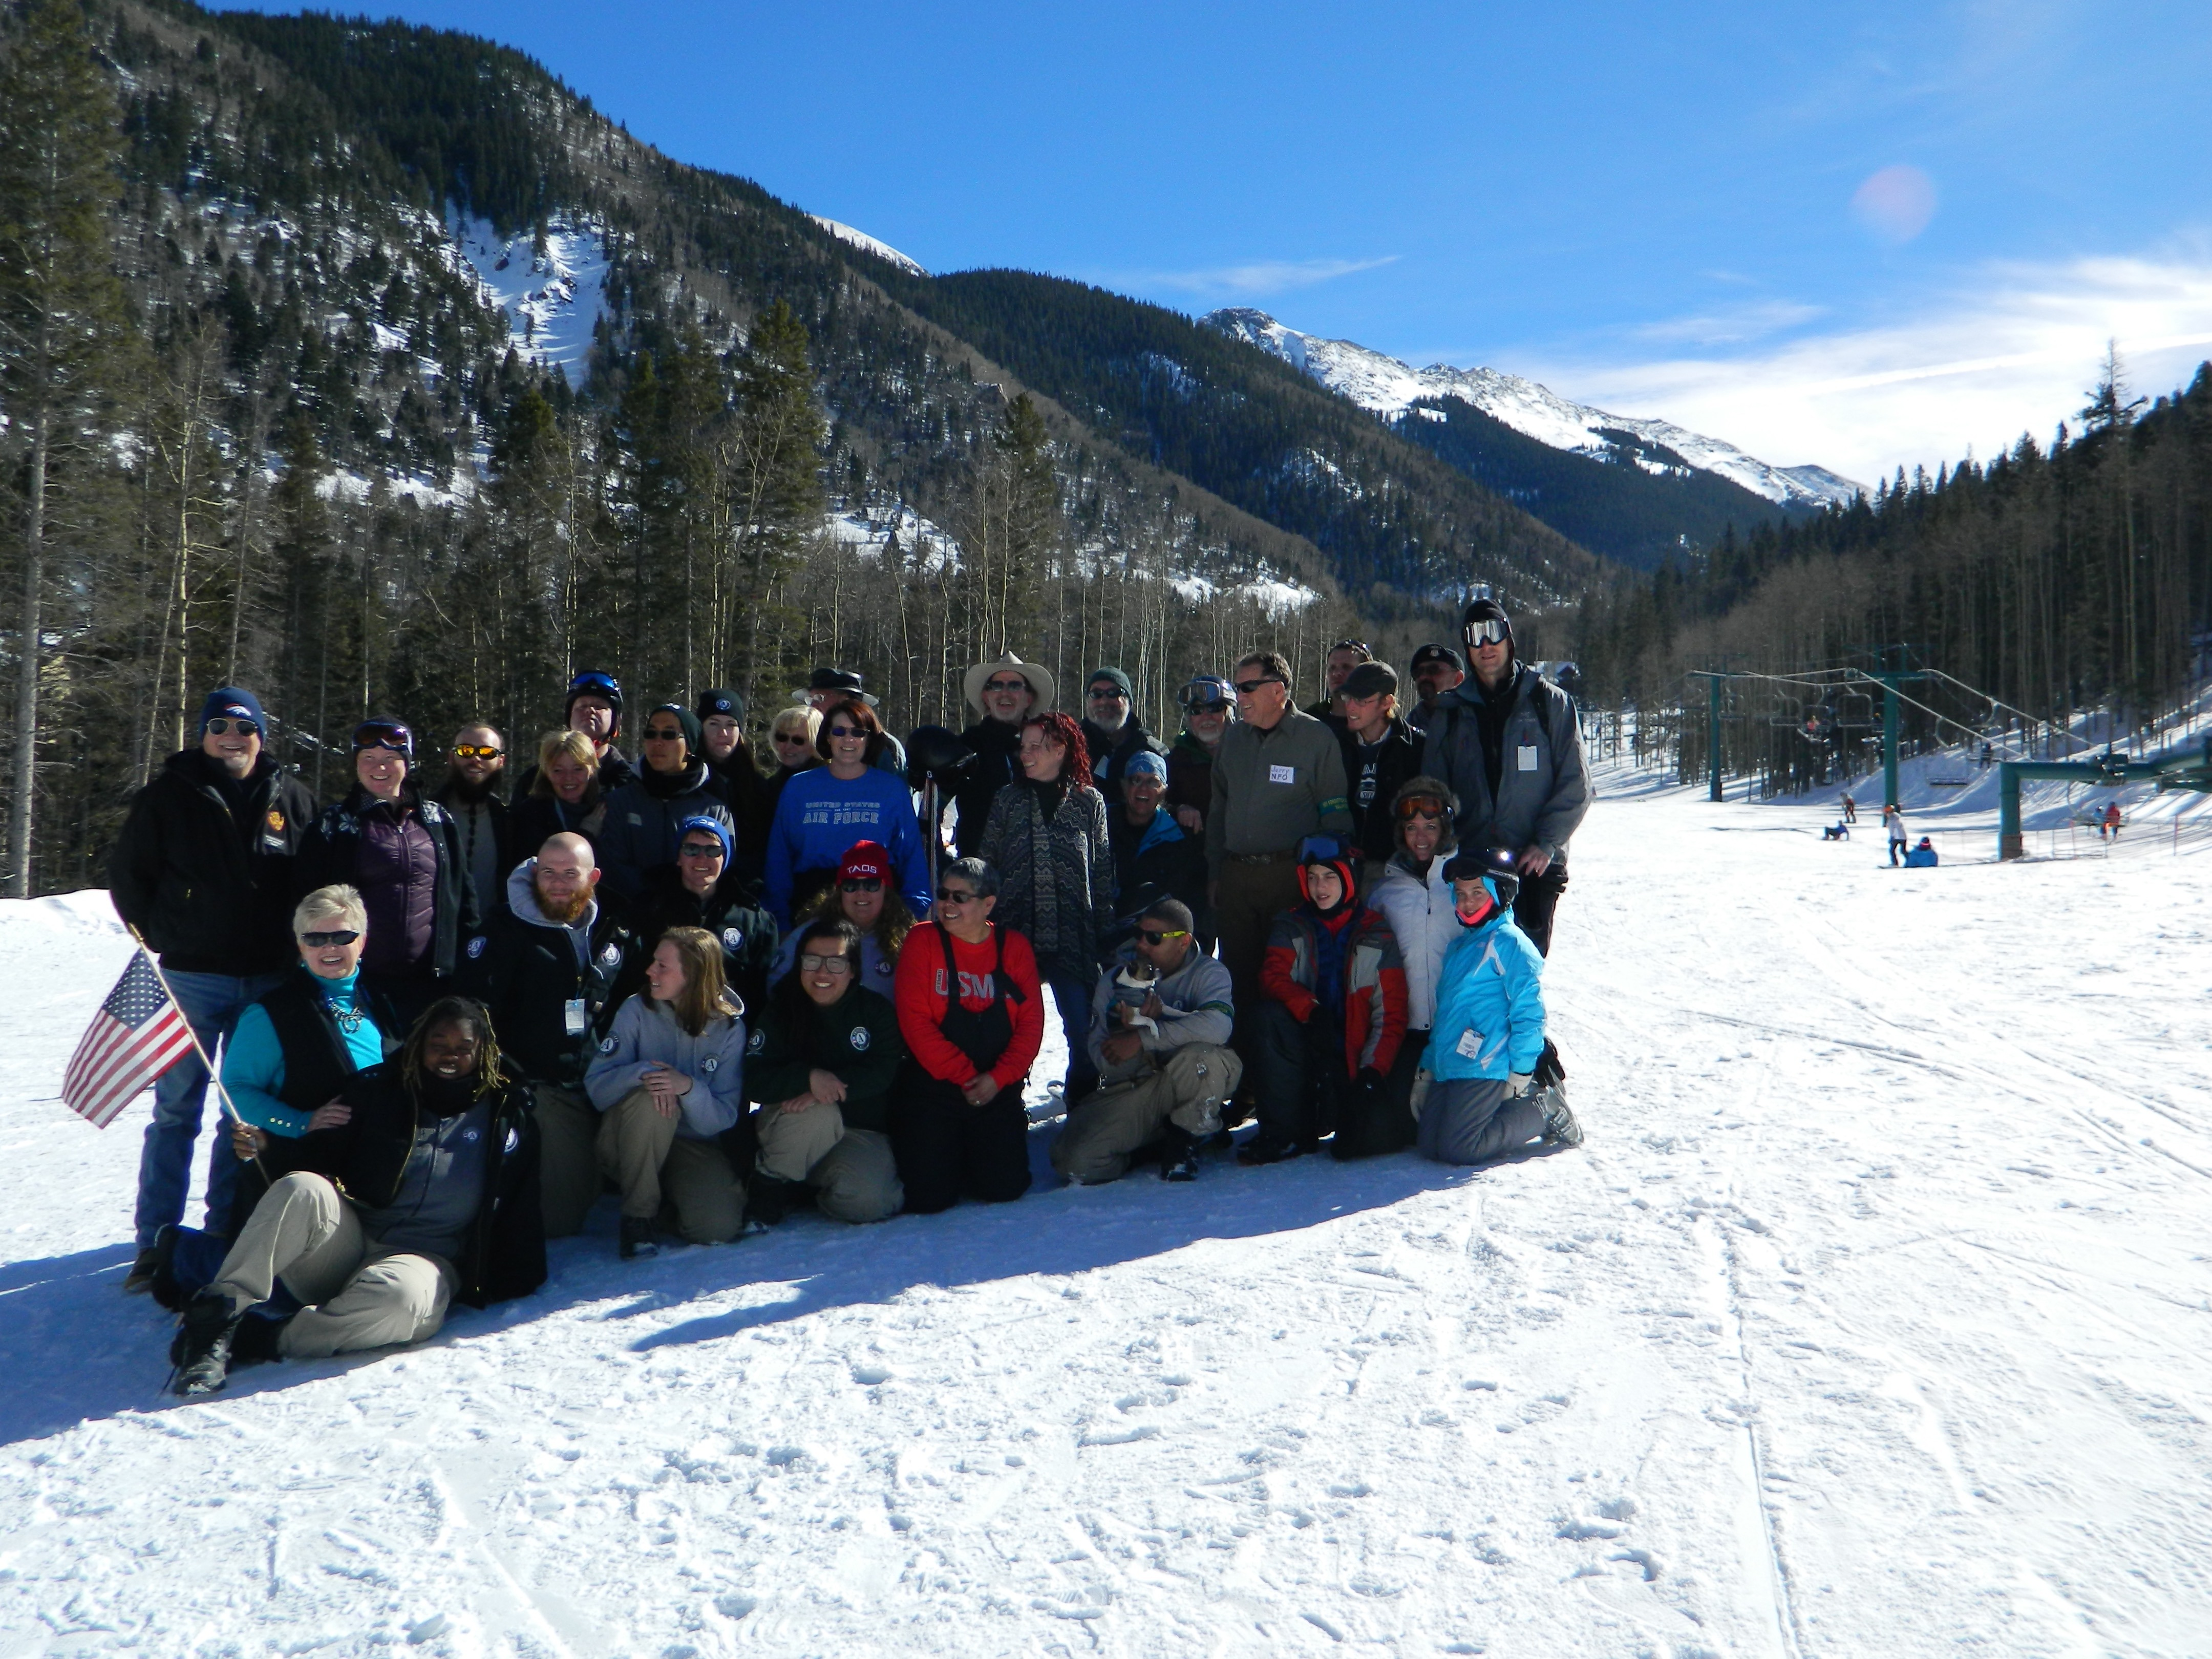 Not Forgotten Outreach group photo at the base of Taos Ski Valley. Chairlift, mountain peaks, blue sky, wintry forest behind.